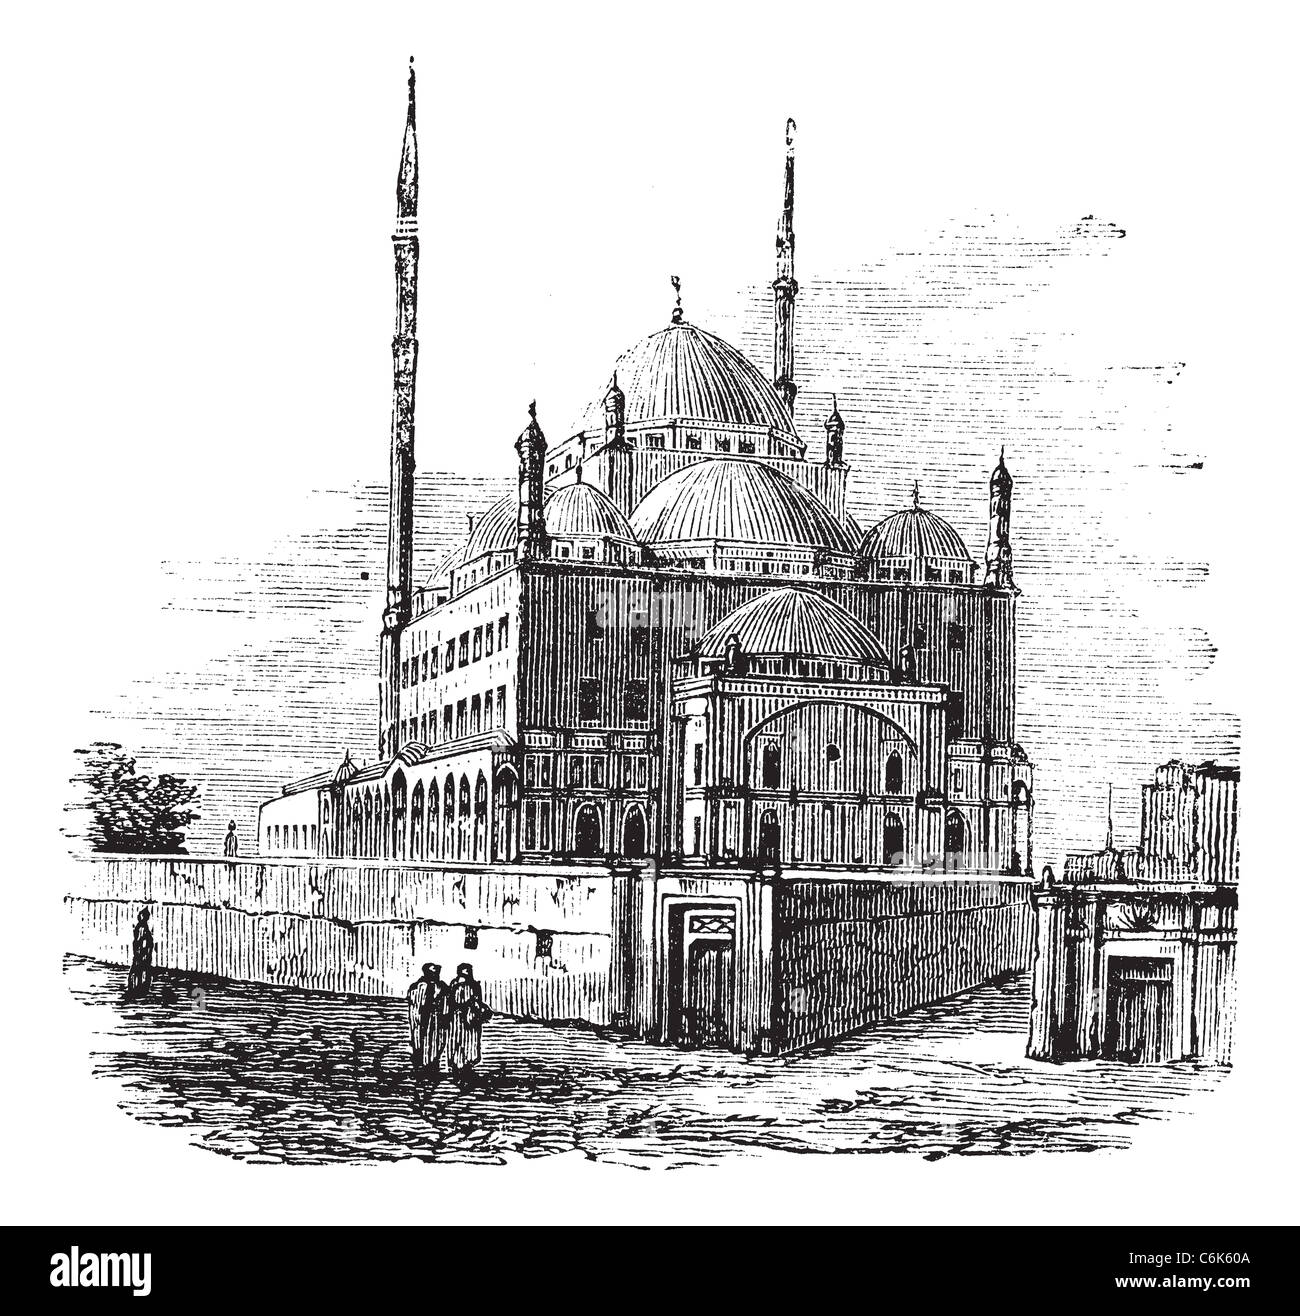 Mosque of Muhammad Ali, Citadel of Cairo, Egypt. Vintage engraving. Old engraved Illustration of the Muhammad Ali - Stock Image